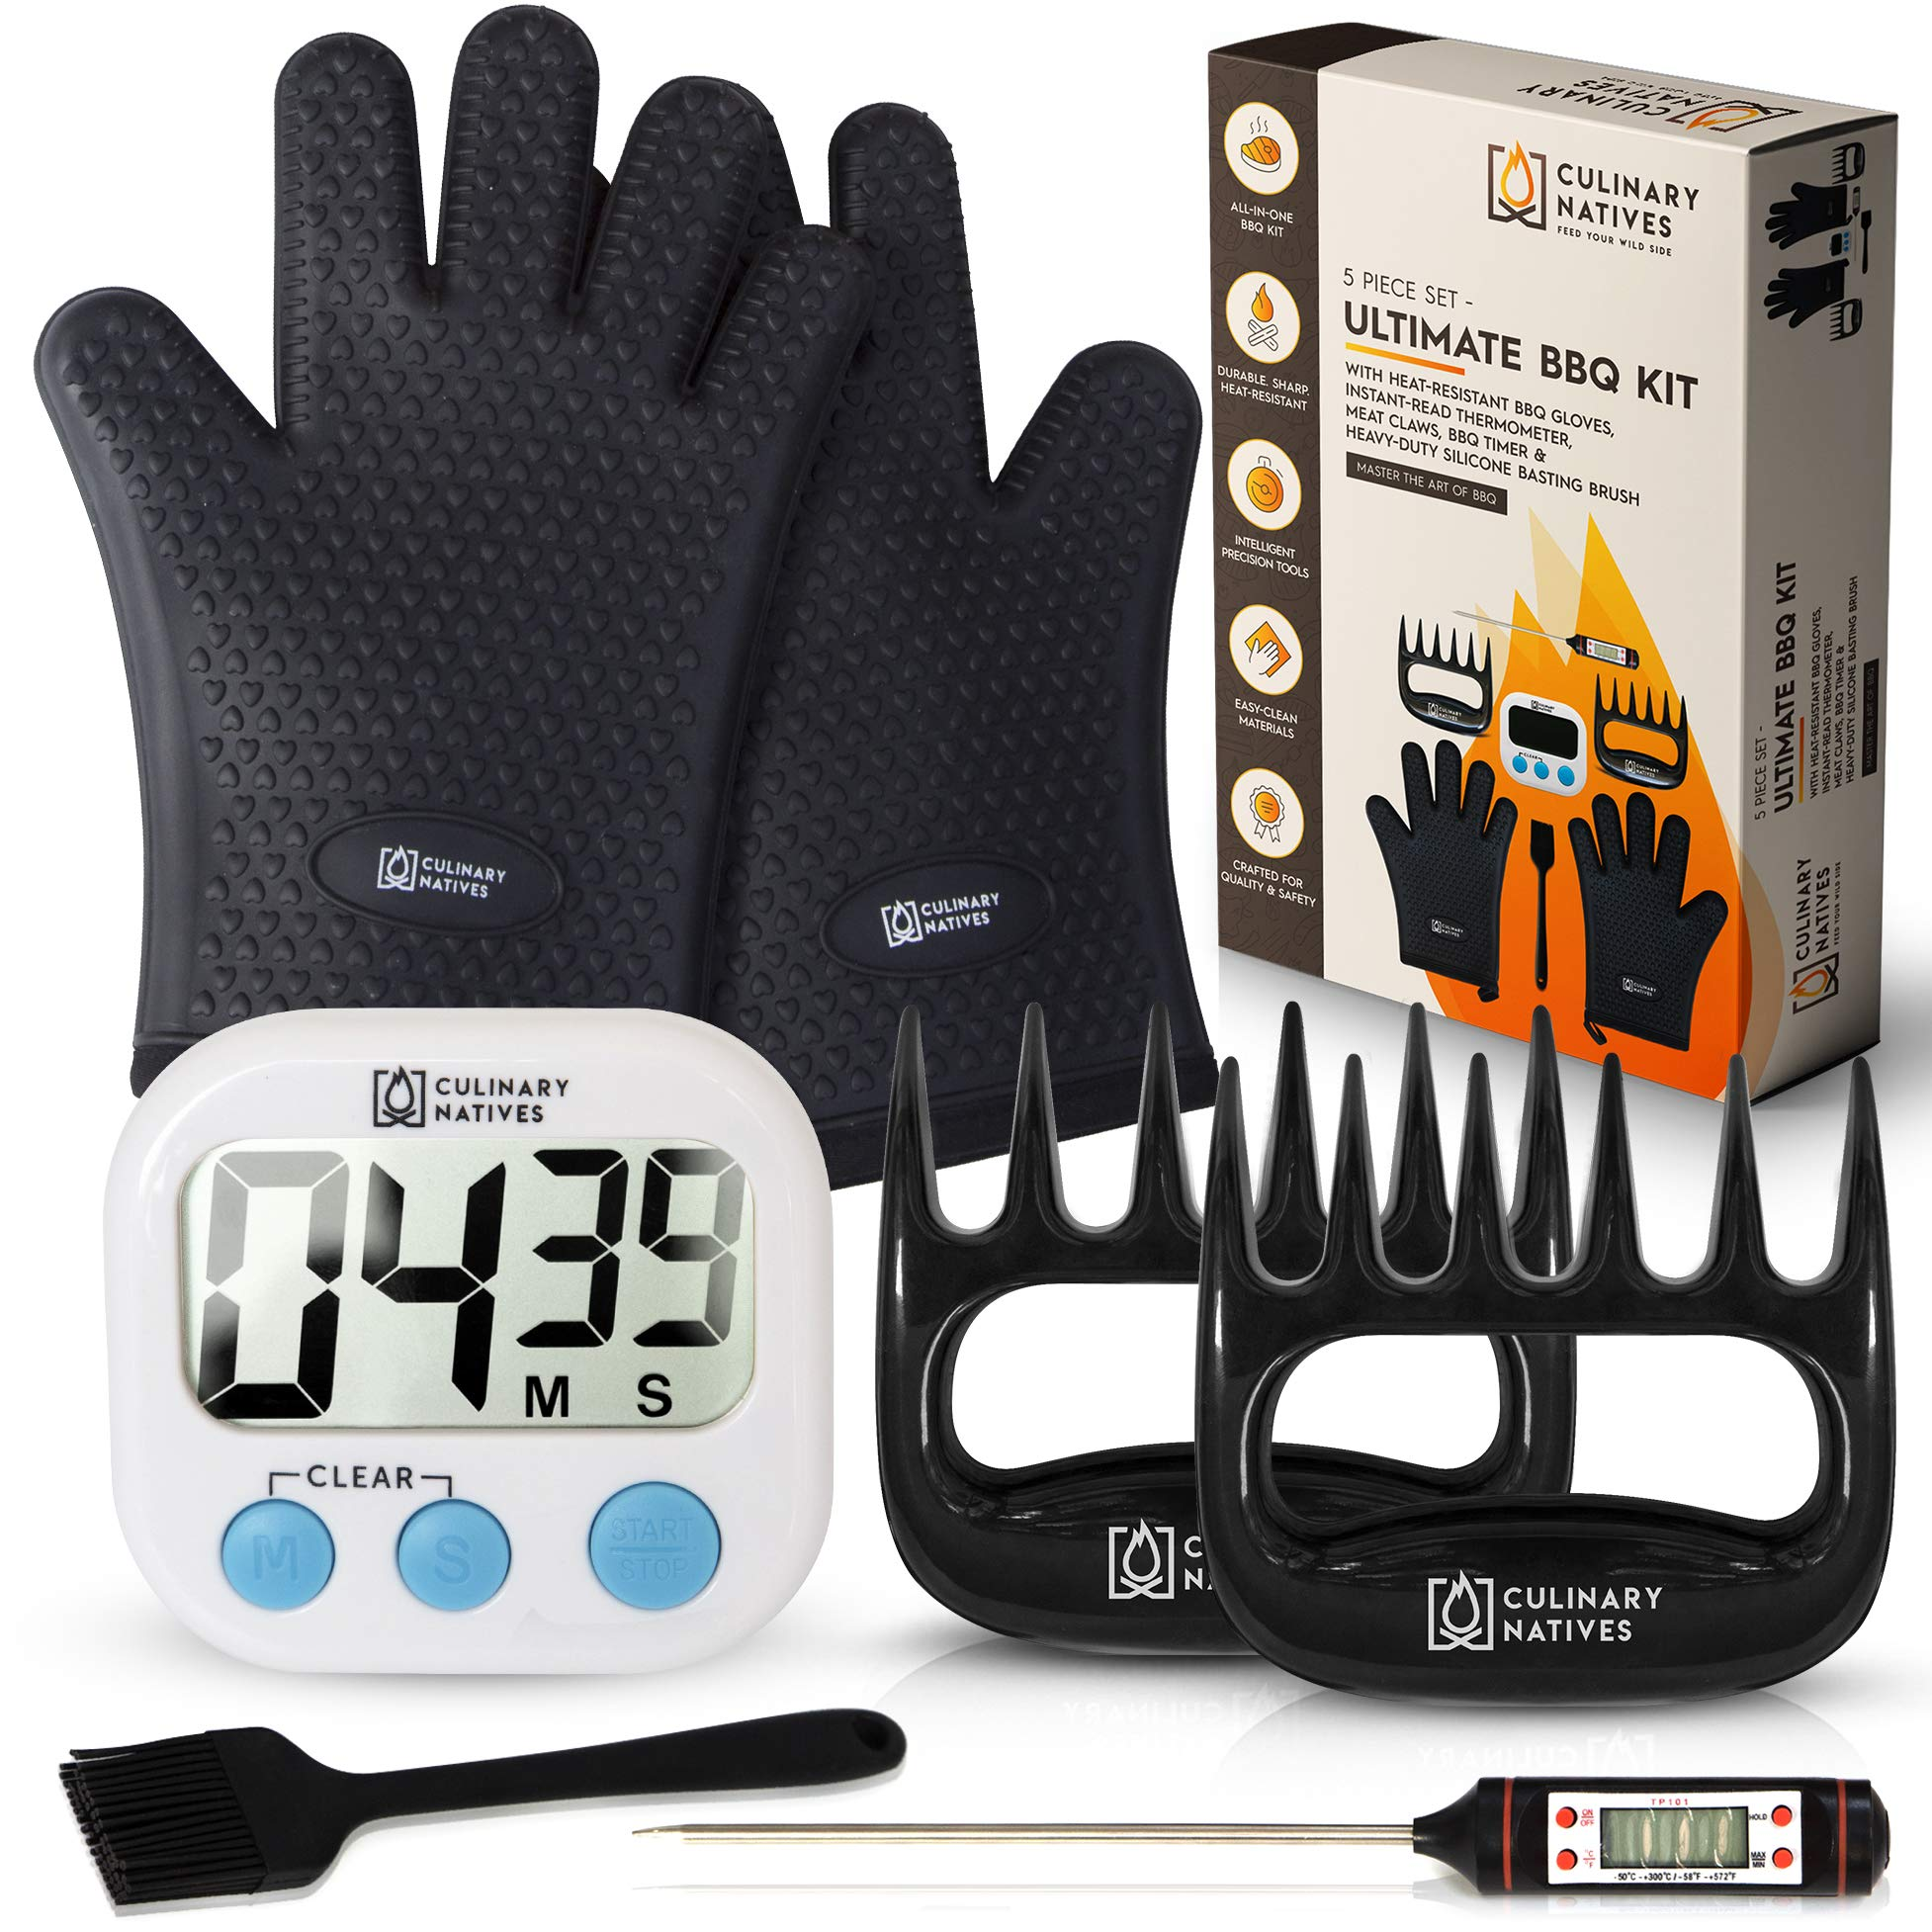 Culinary Natives | BBQ Gloves, Meat Shredder Claws, Timer, Thermometer, and Brush | No.1 Kit for Pulled Pork | 7n1 Smoker Accessories/Tools for Grilling by Culinary Natives